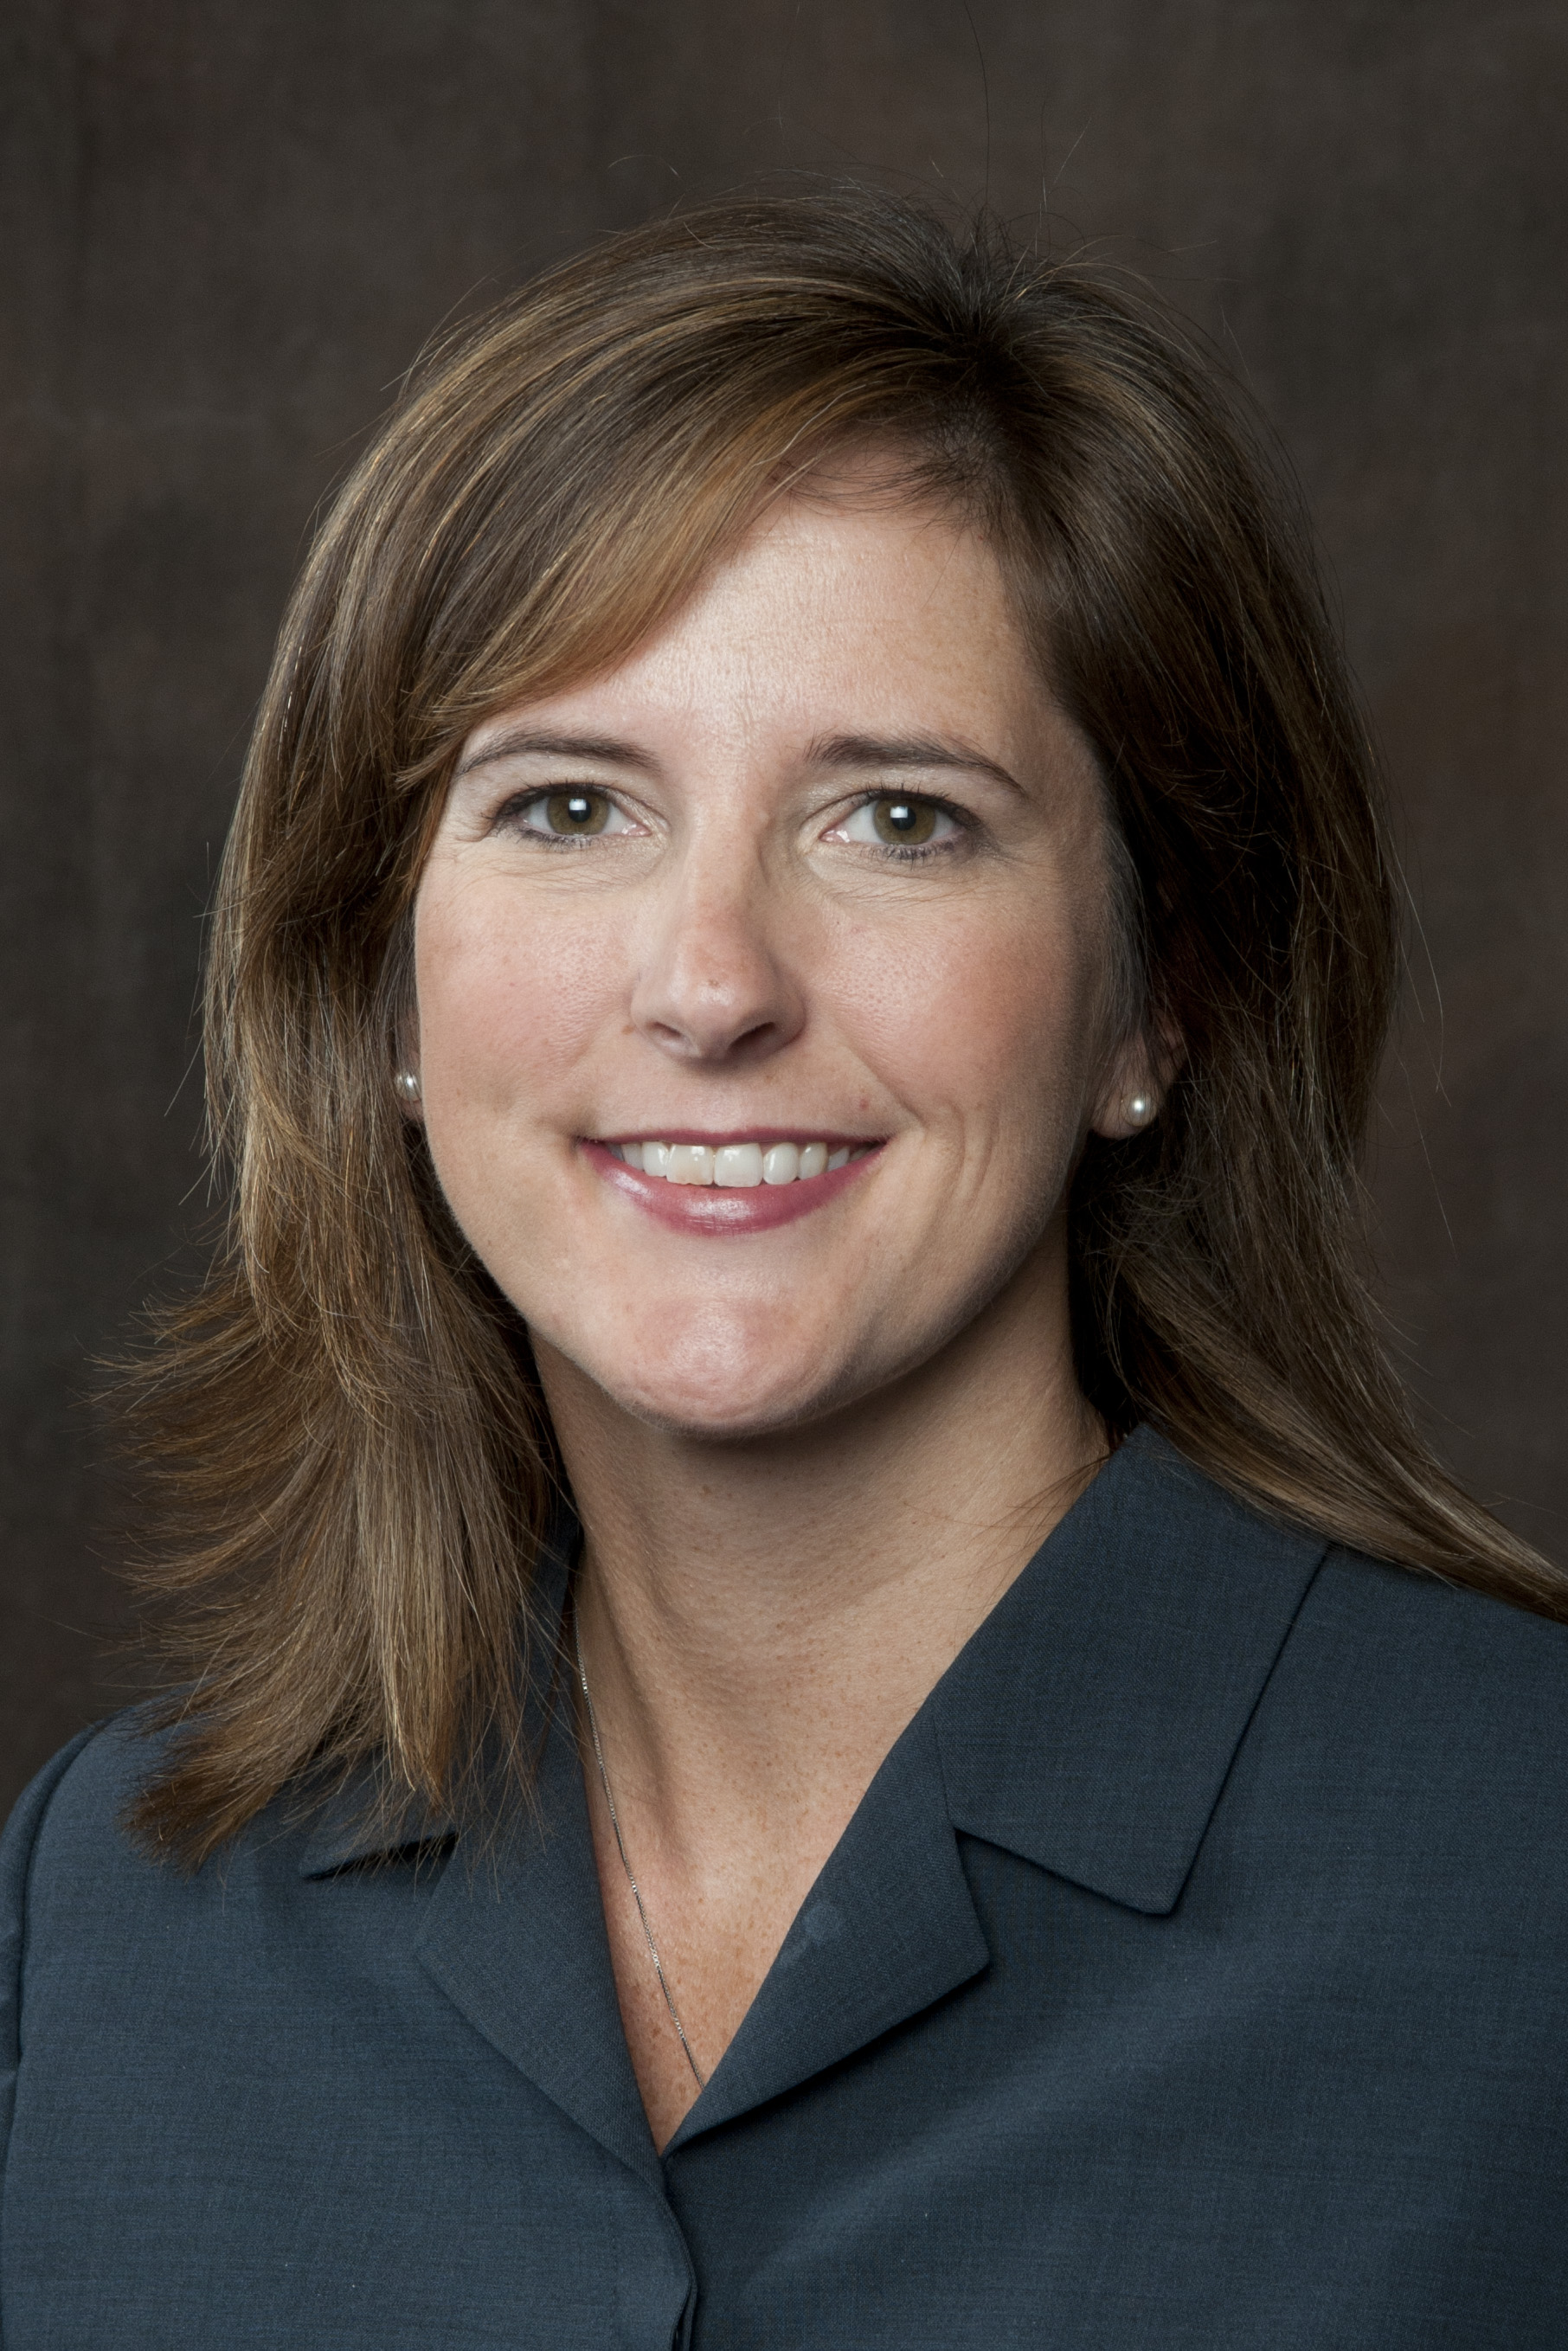 Andrea Schruijer named to Leadership Georgia Class of 2014